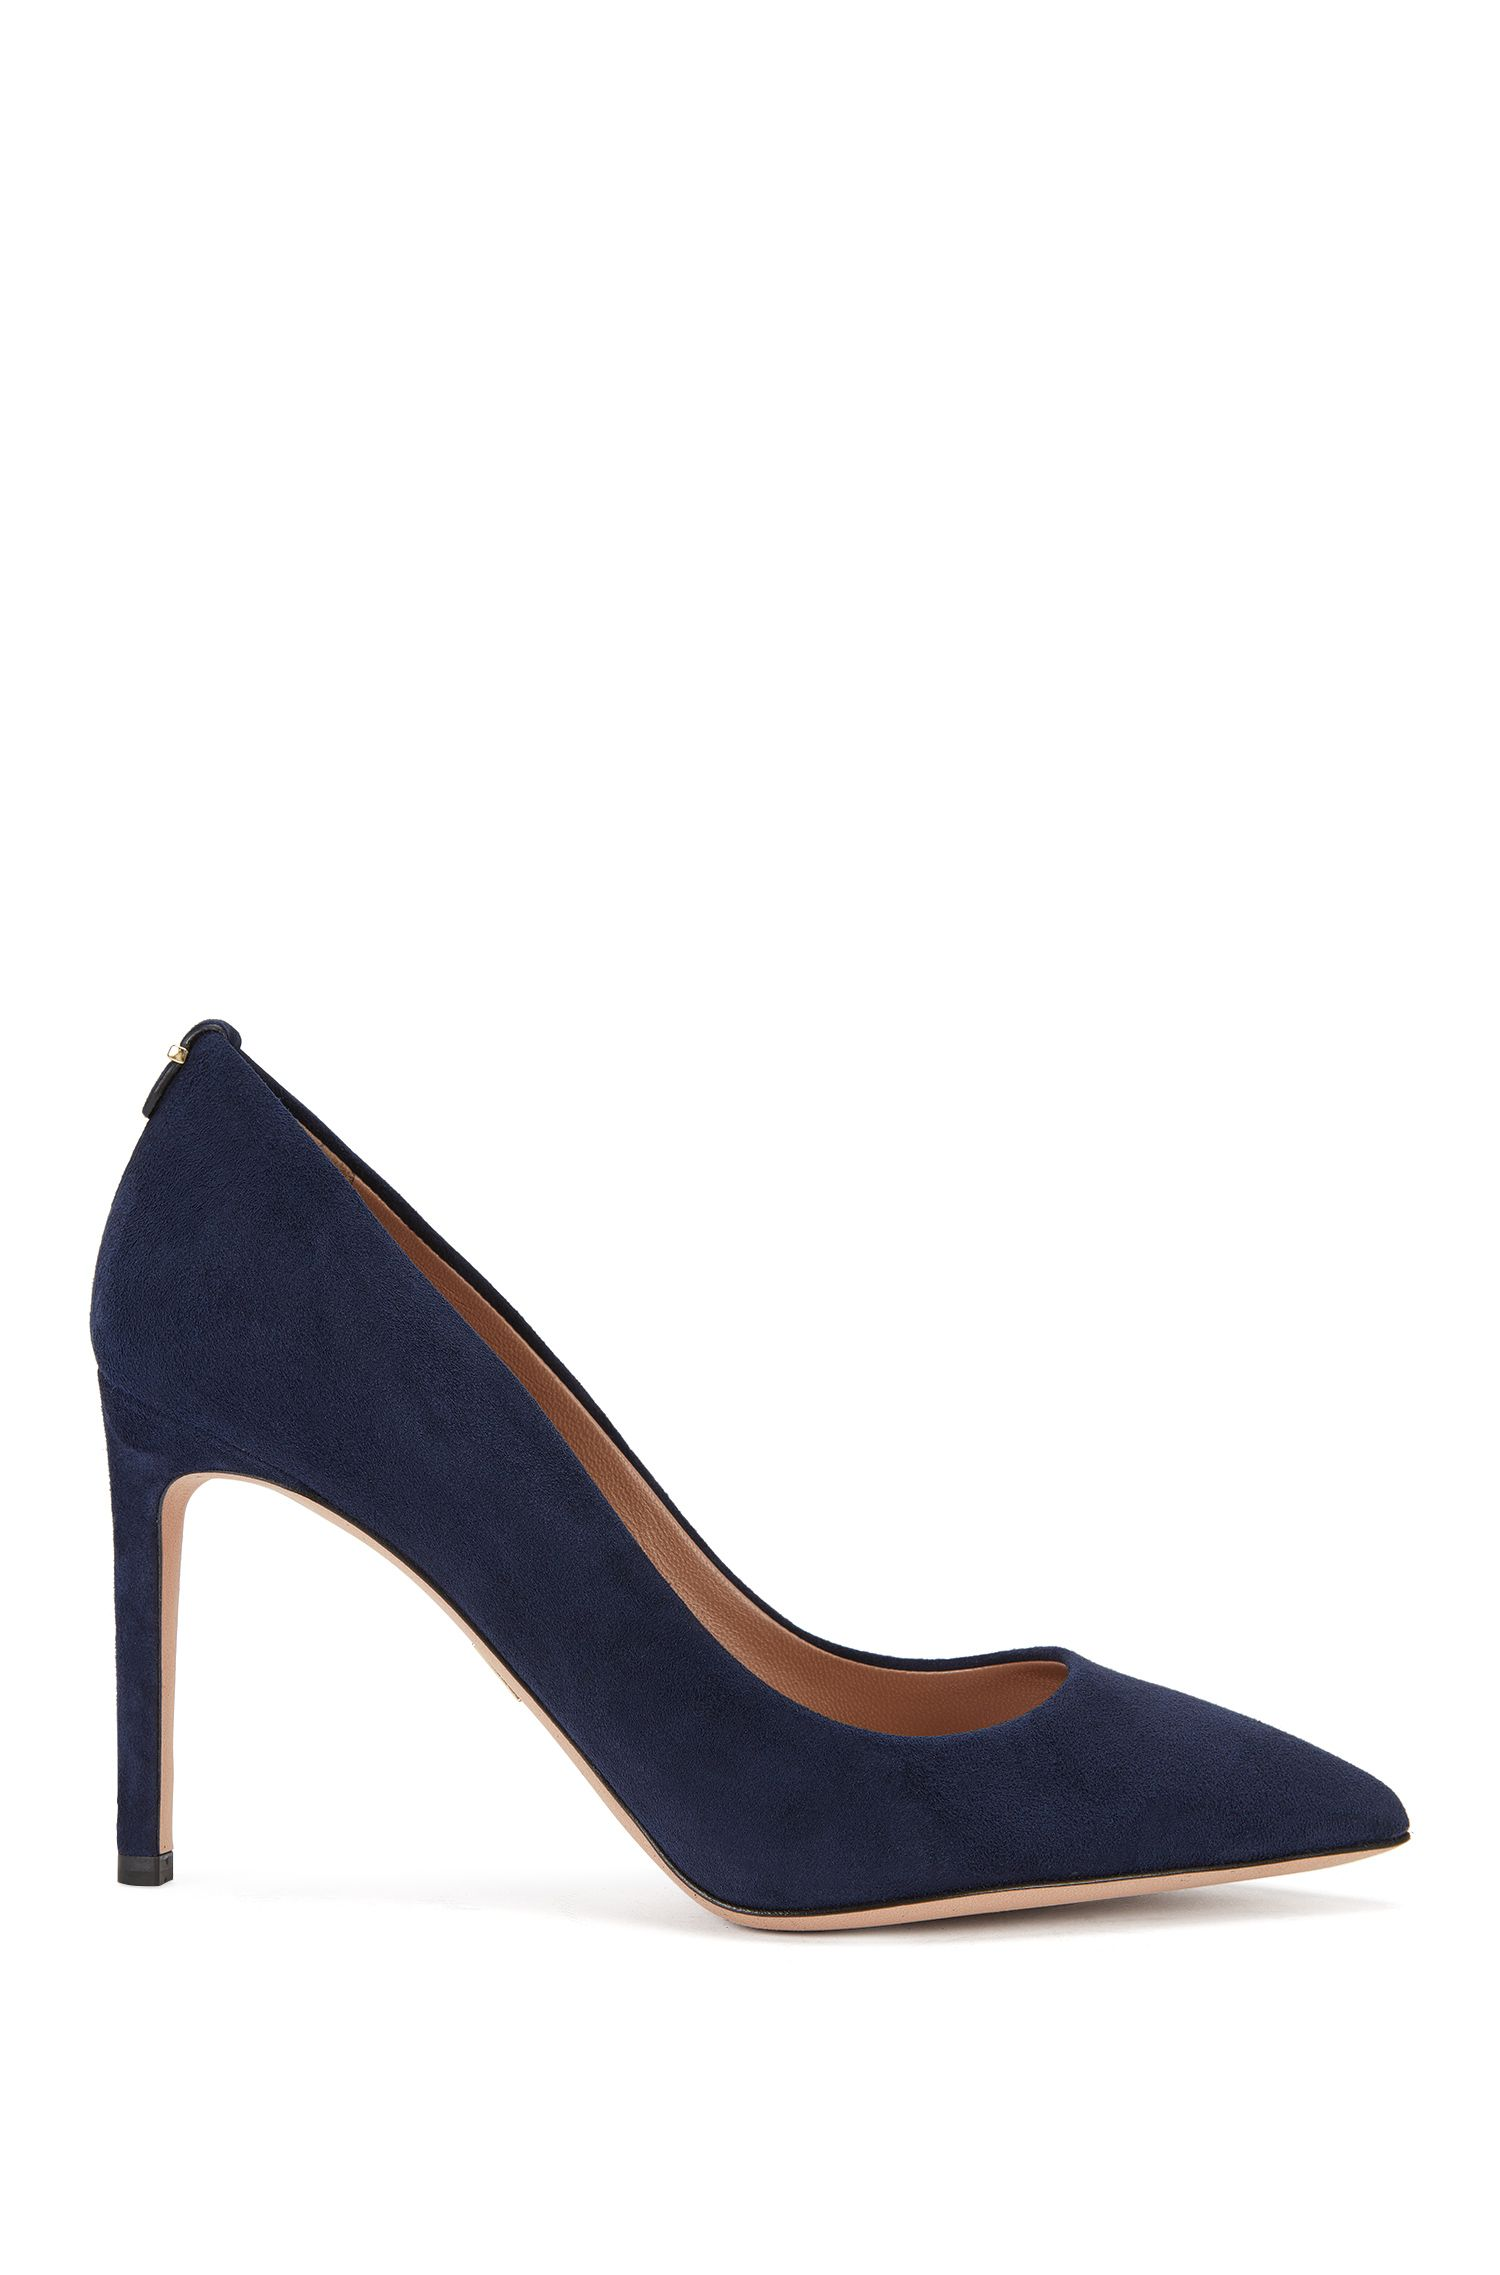 BOSS Luxury Staple pumps in Italian suede